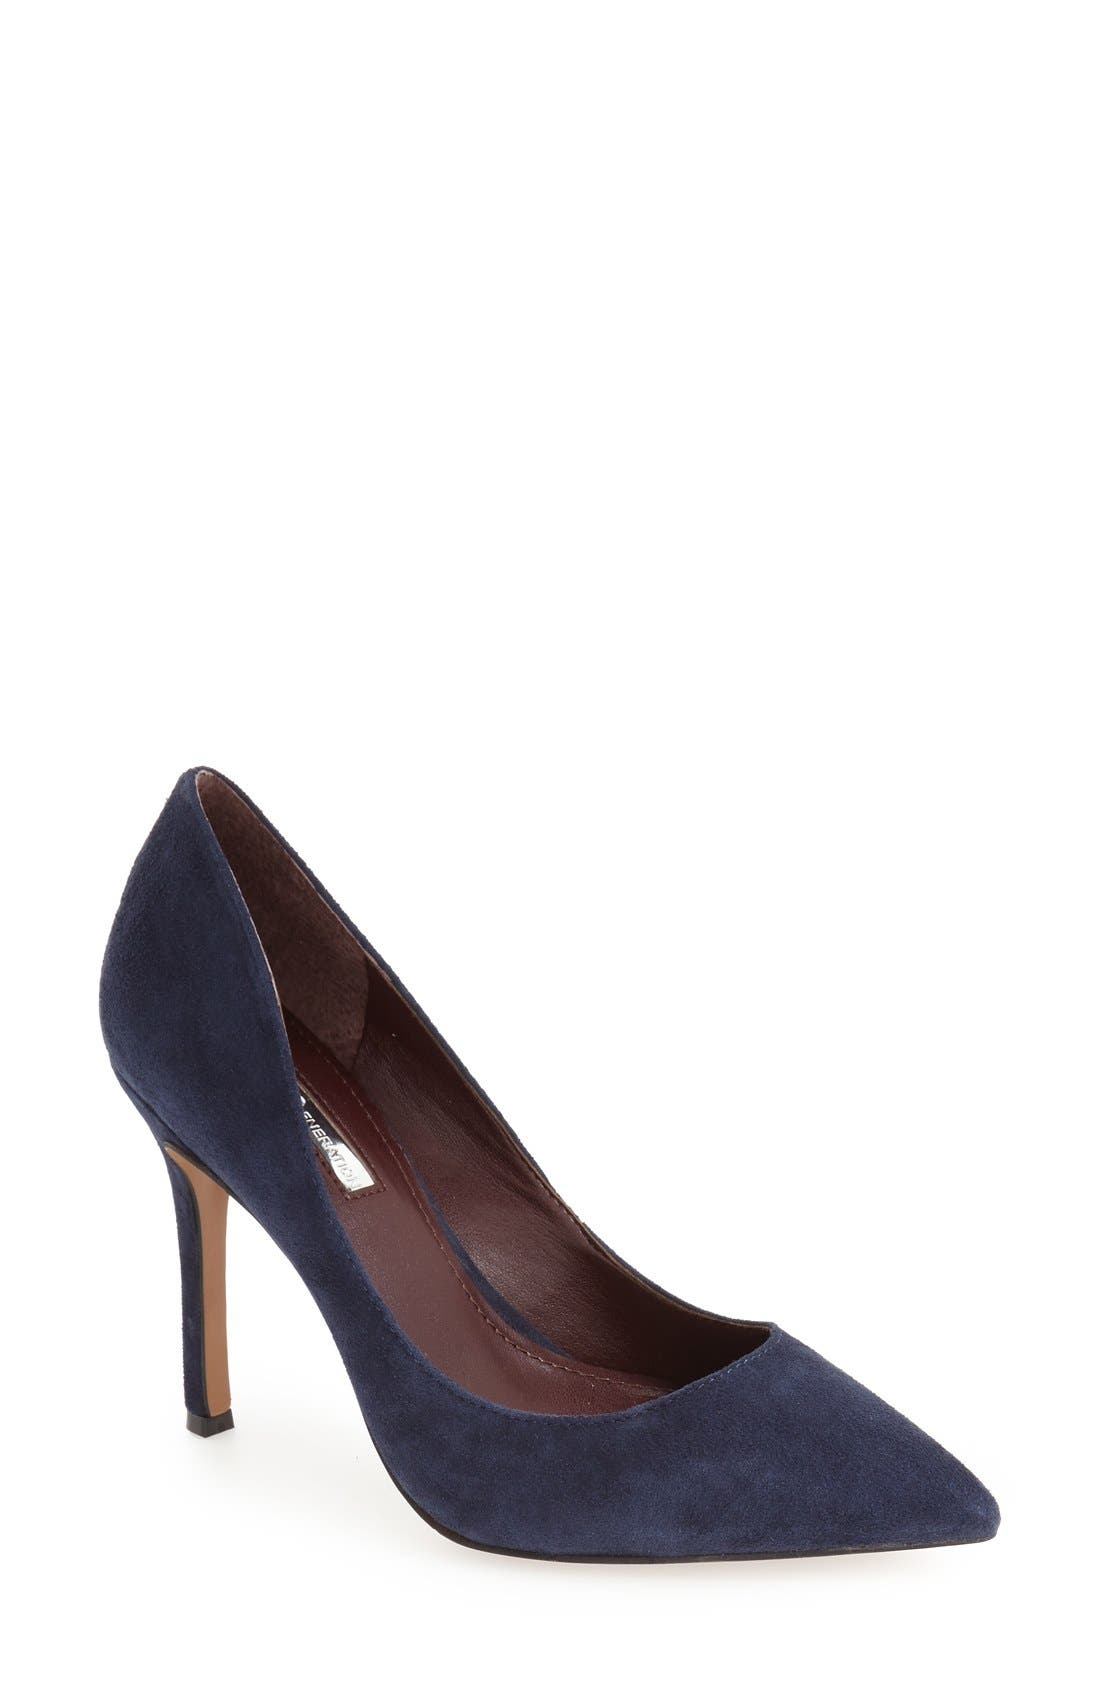 Main Image - BCBGeneration 'Treasure' Pointy Toe Pump (Women)